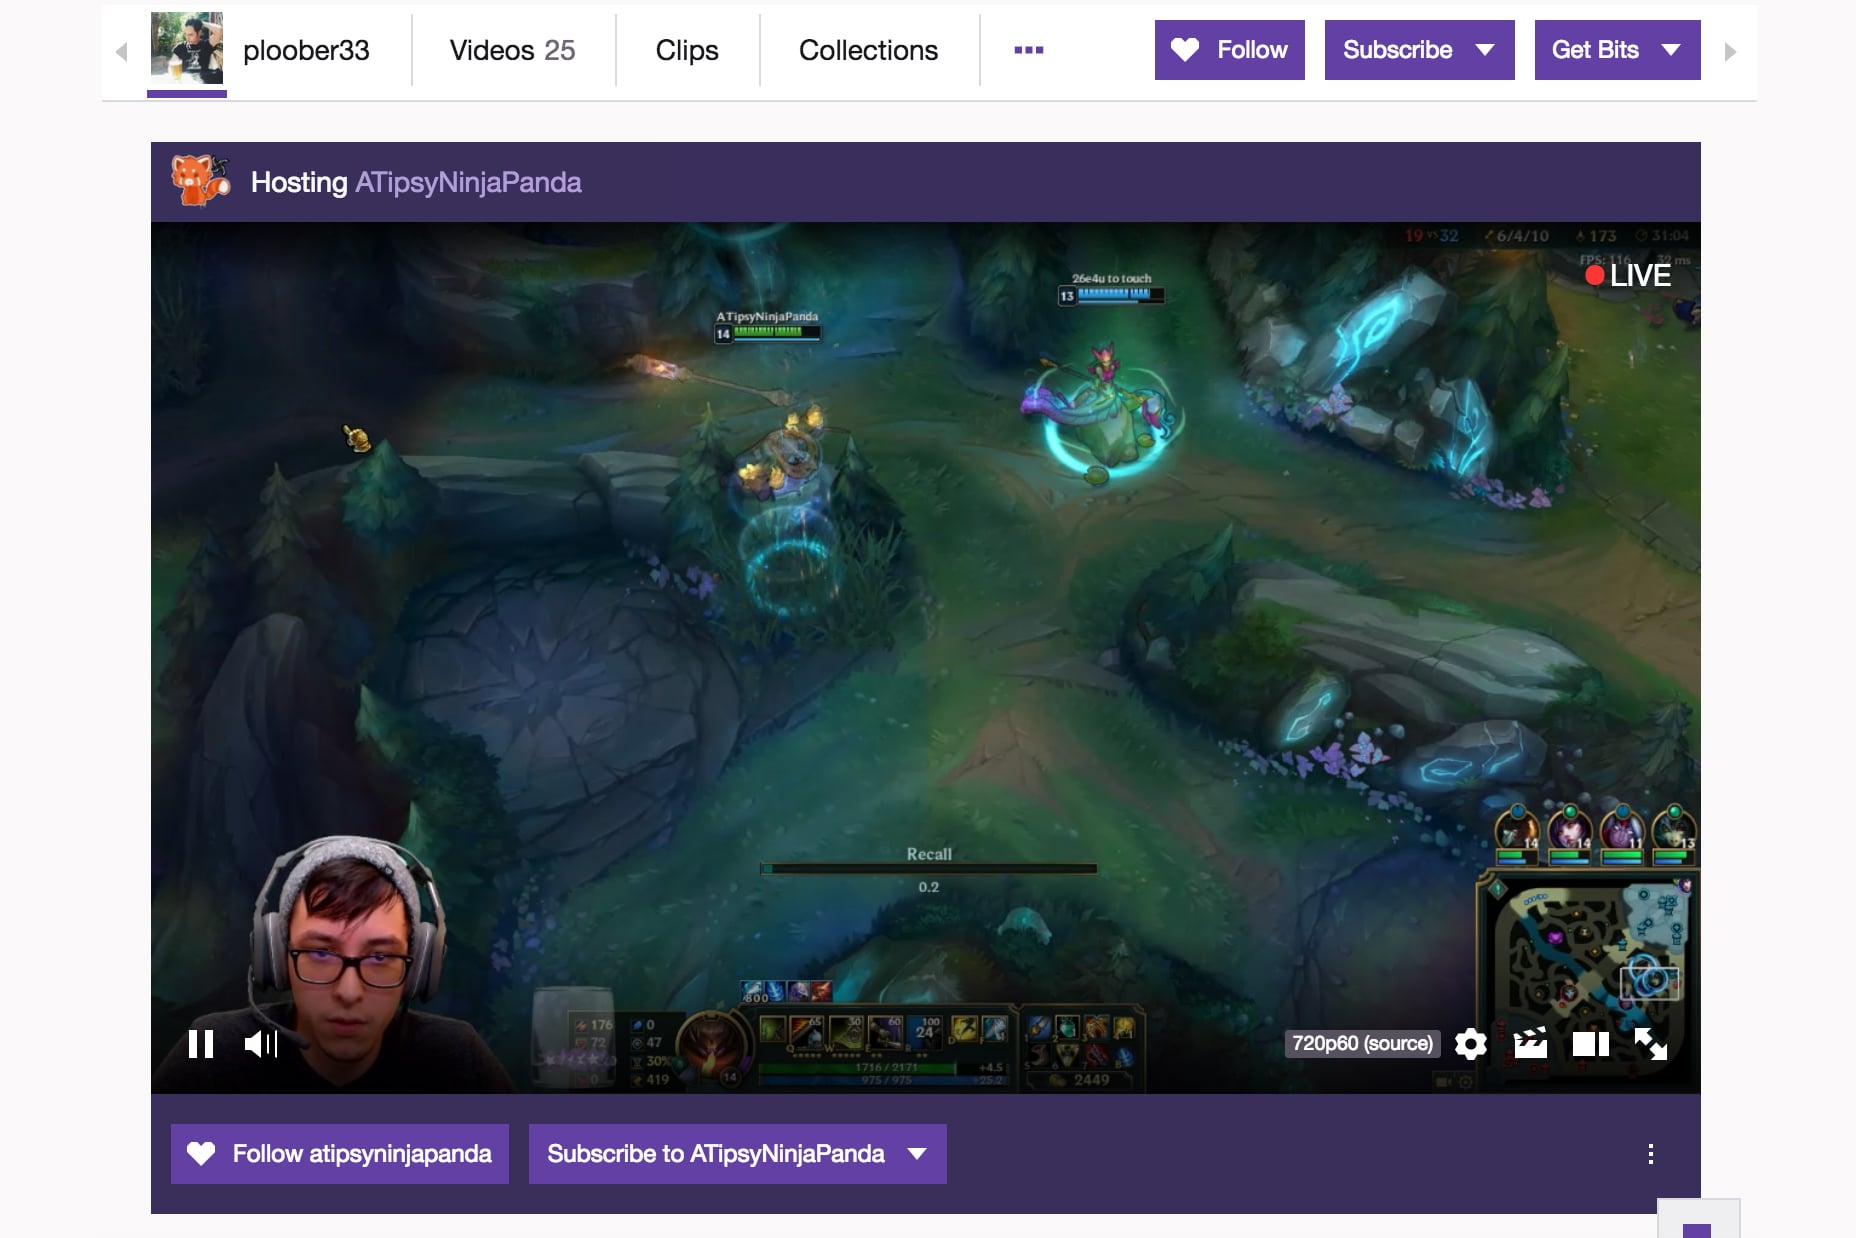 Hopst Other Streamers on Twitch